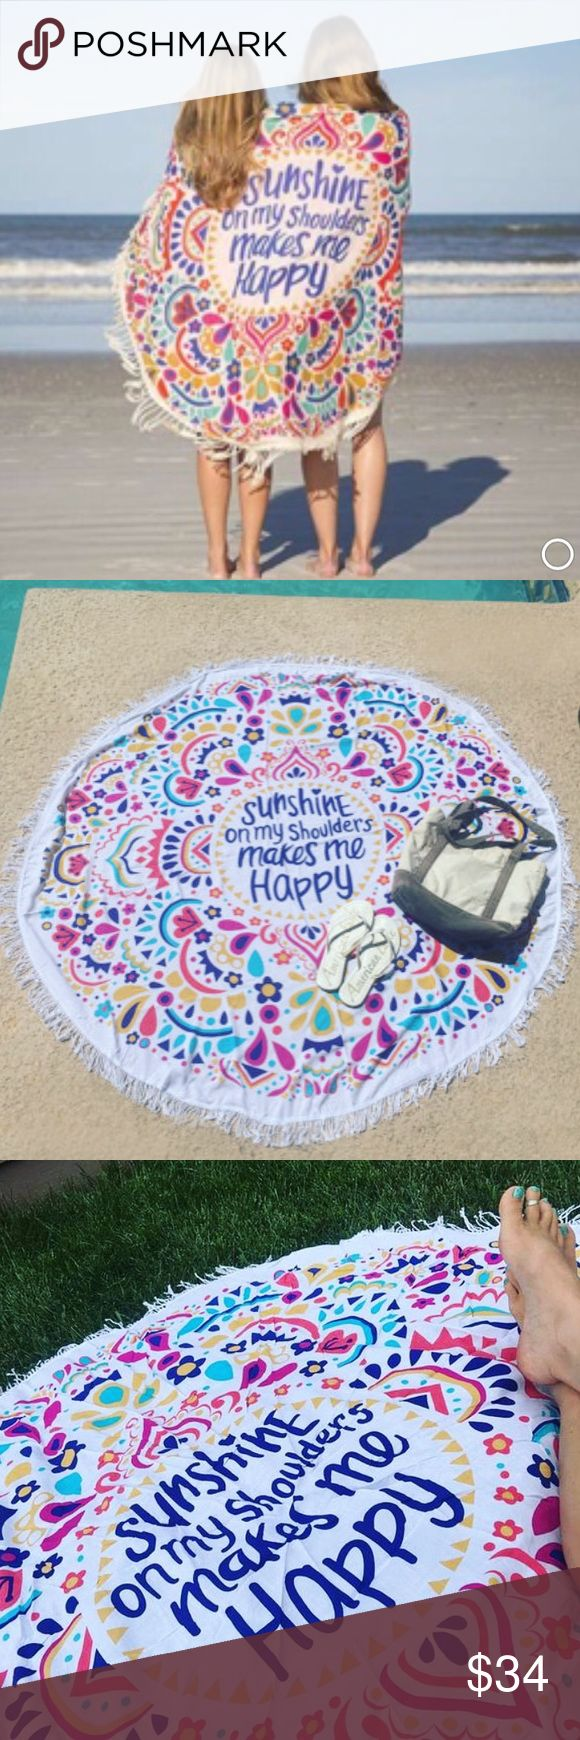 "Boho Festival Round Sunshine Beach Blanket Vibrant round Boho festival lightweight blanket. Perfect for the beach, park, yoga, or to use as a wrap or sarong. ☀️""Sunshine on my shoulders makes me happy"" written in blue in the center, surrounded by multi-colored designs all around. White fringe hem. Measures 56"" across. *Soft and lightweight - not heavy ""towel"" terry cloth fabric. MSRP: $52. NWT. *NOT VS PINK! Used for exposure since it's very similar to the ones by VS PINK. PINK Victoria's…"